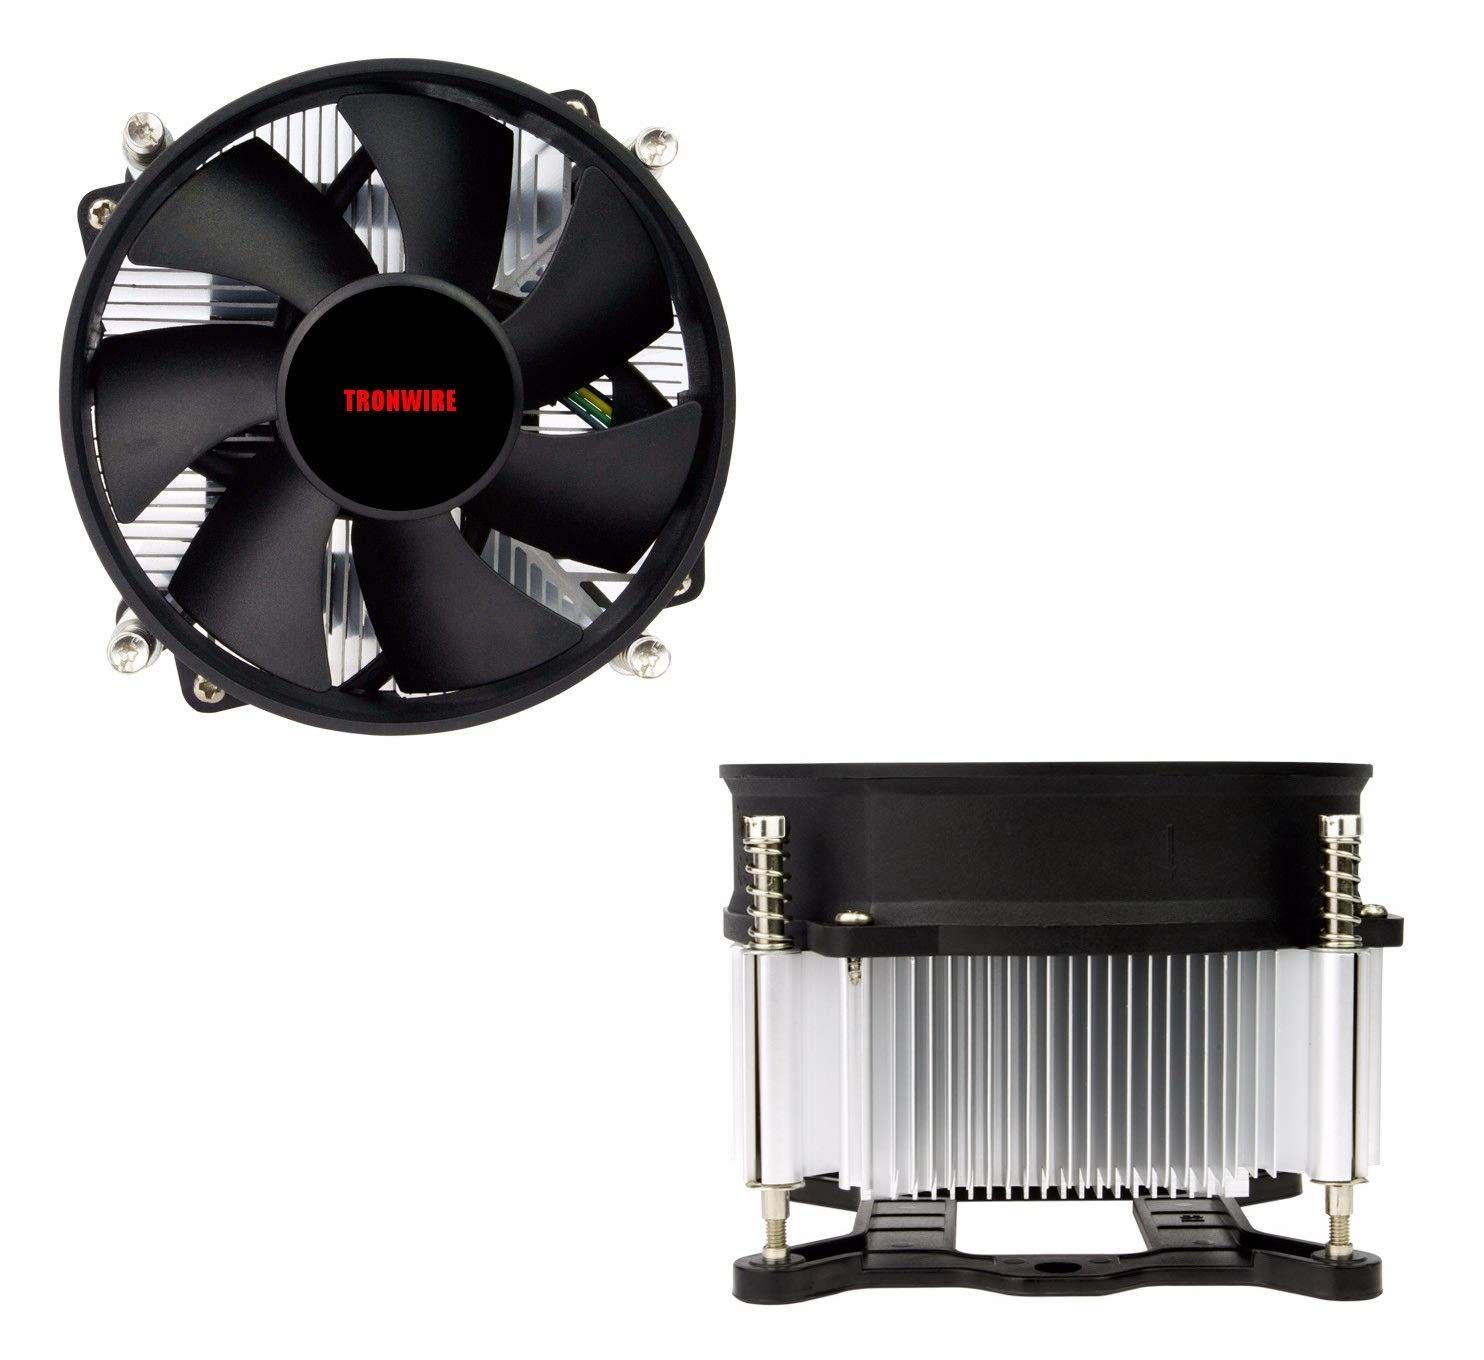 TRONWIRE TW-3 Premium Intel Core i3 / i5 / i7 Socket 1156/1155 / 1151/1150 4-Pin Connector CPU Cooler With Aluminum Heatsink & 3.62-Inch Fan With Pre-Applied Thermal Paste